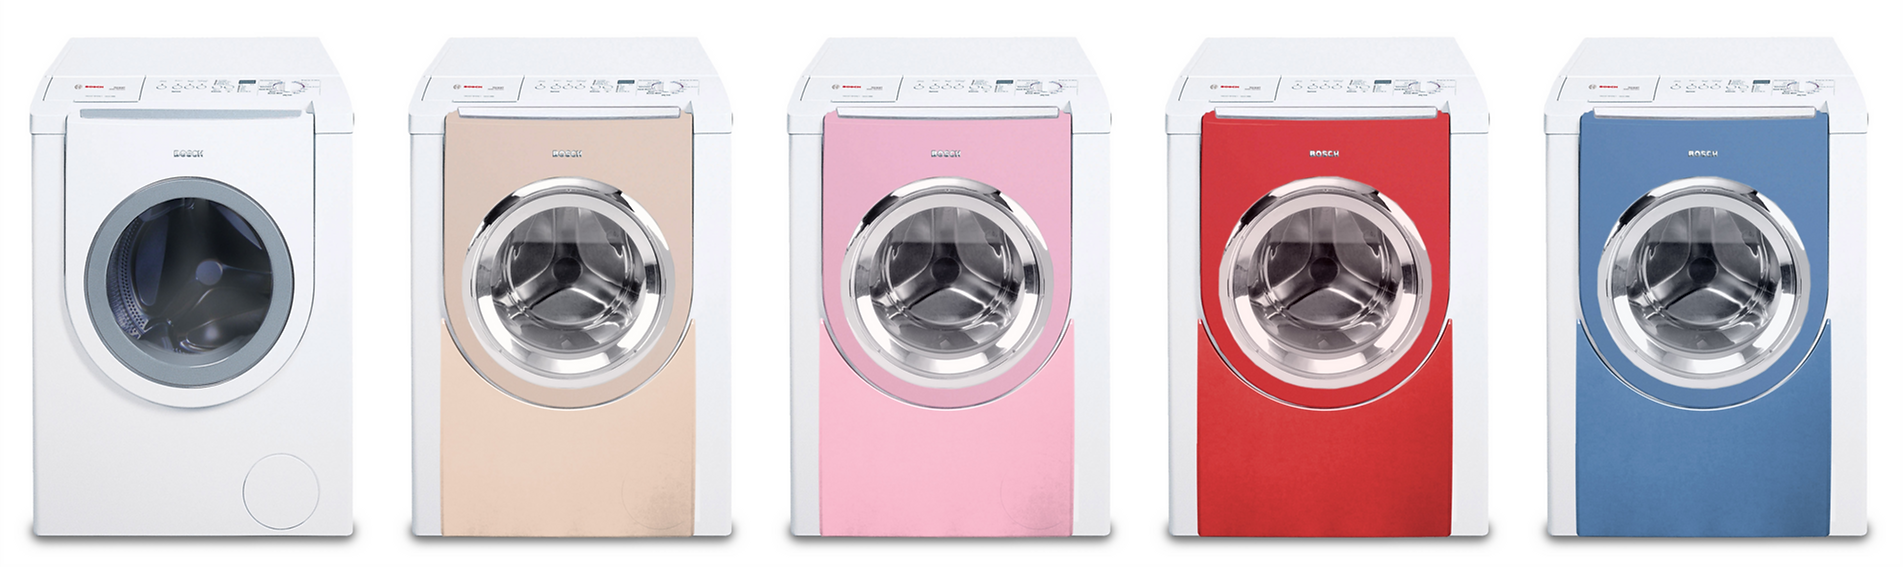 Bosch_Laundry_8.png